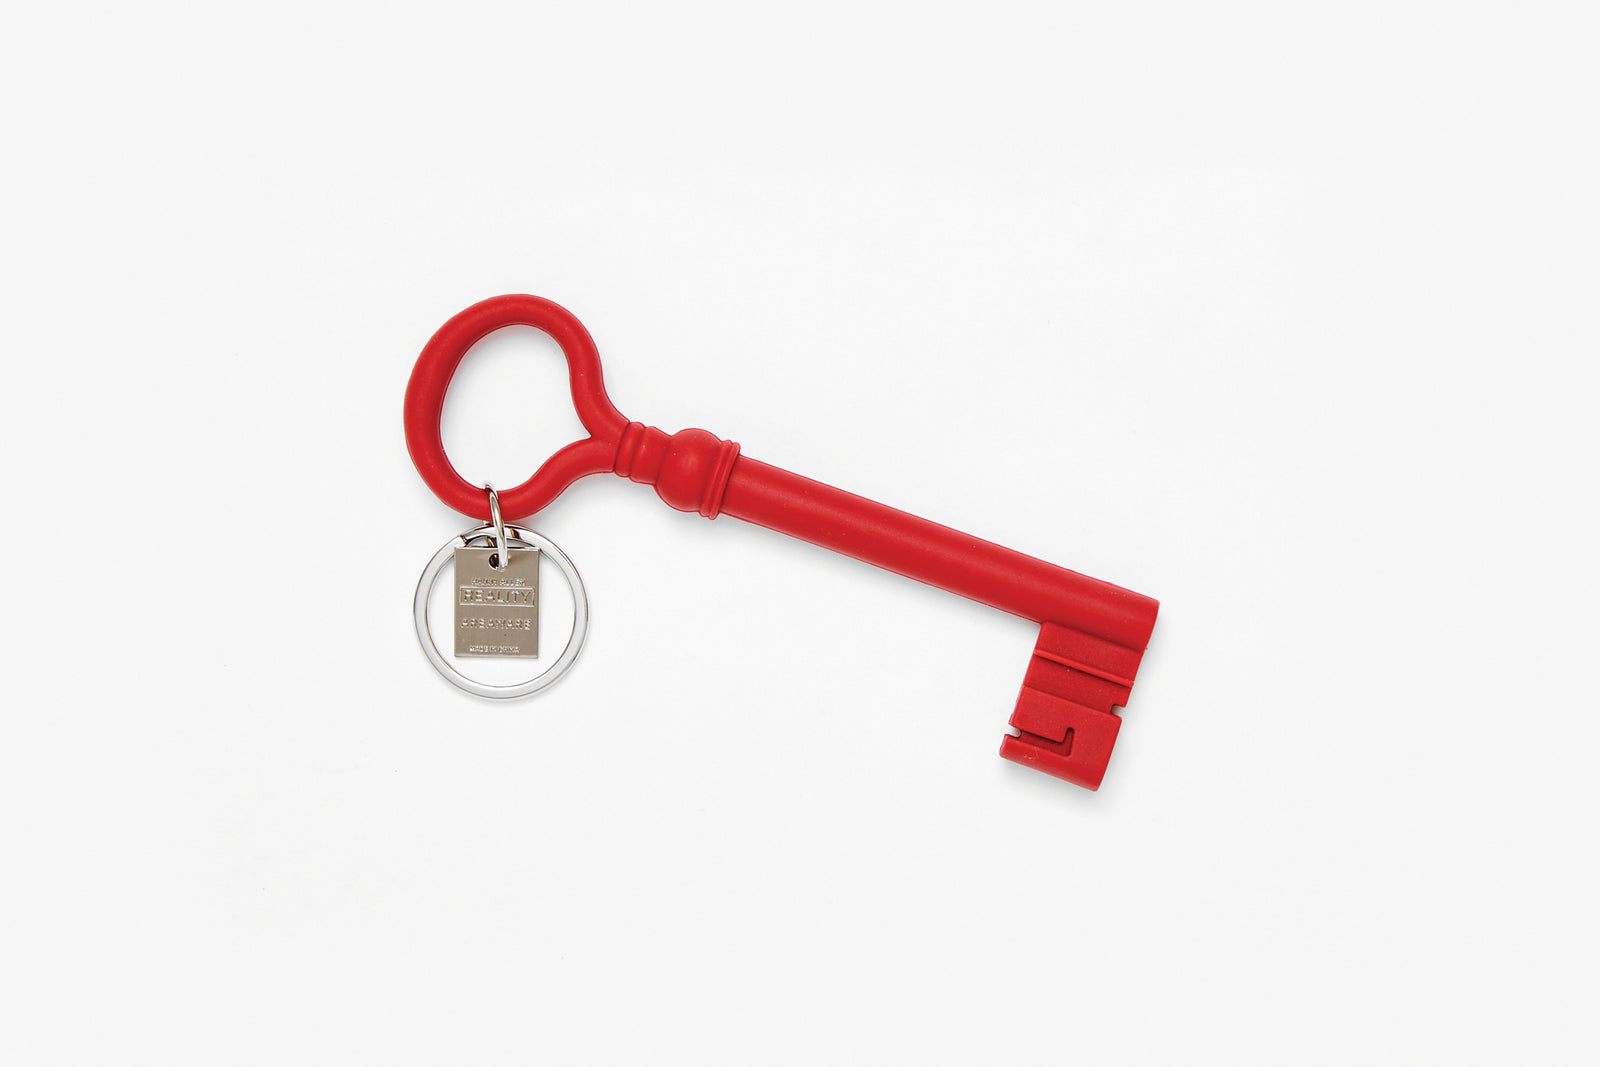 Reality Key Keychain Bundle